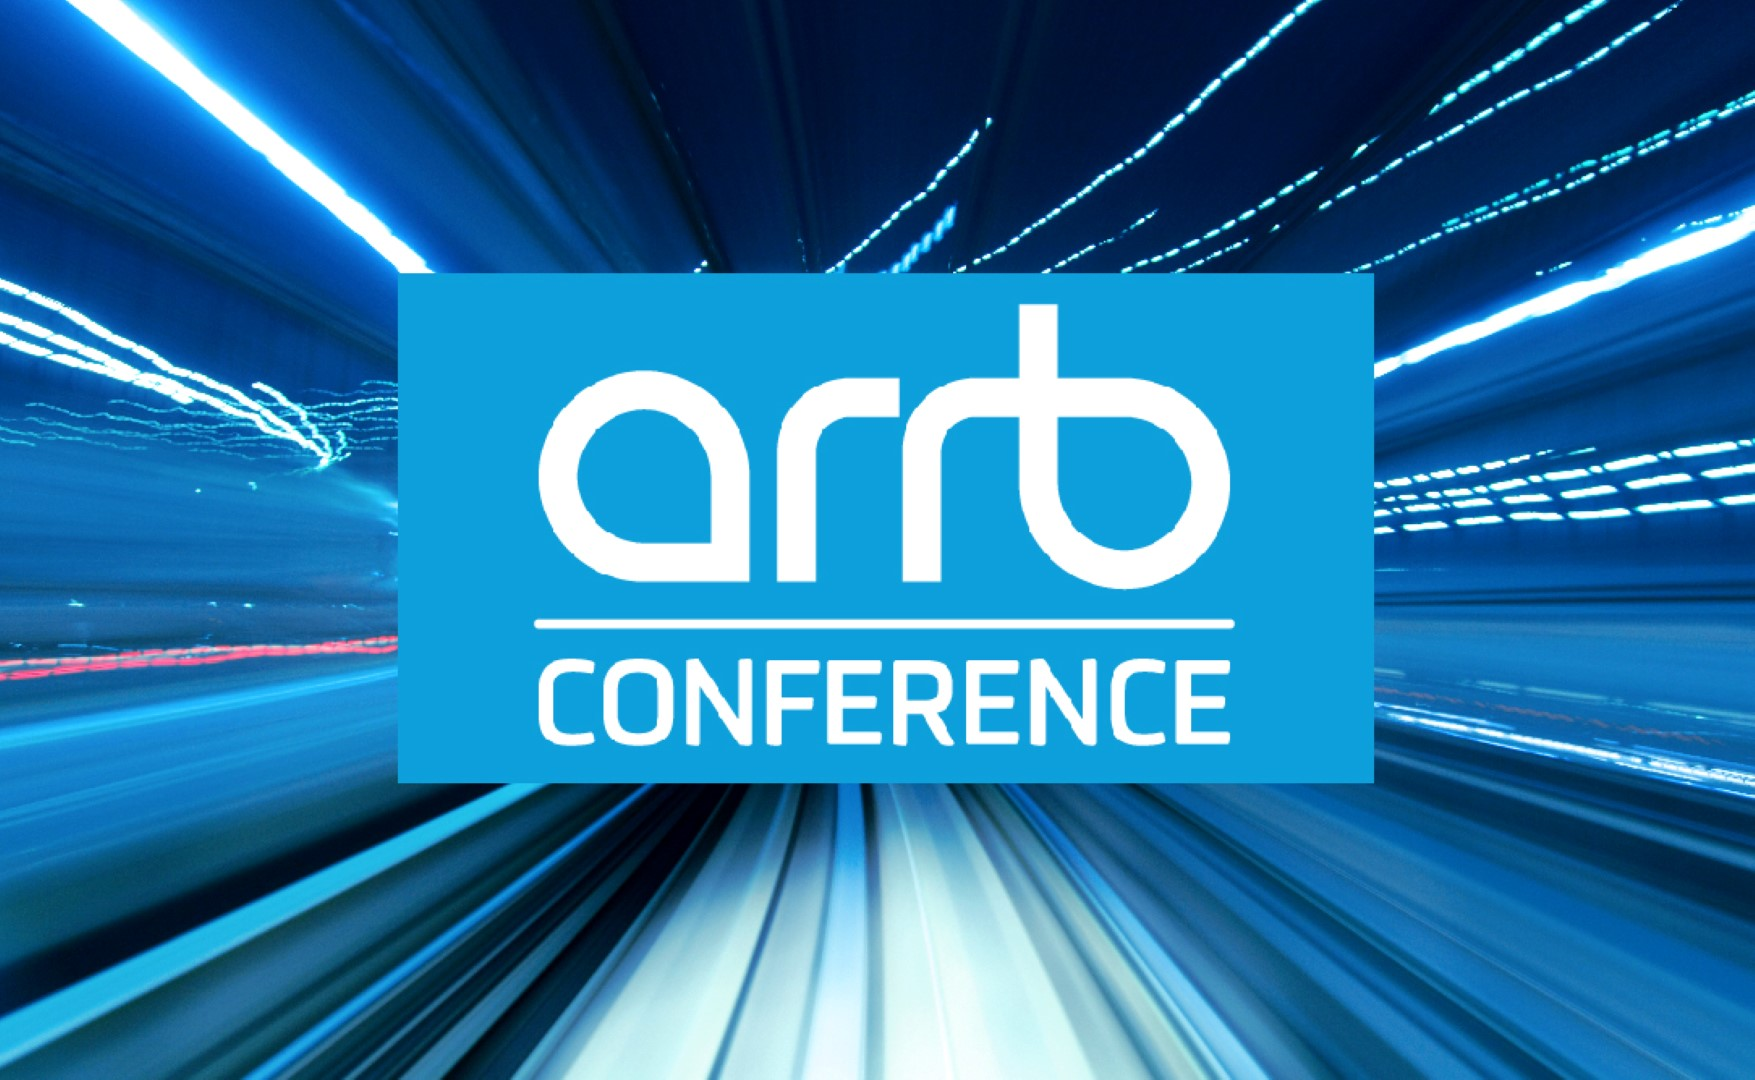 ARRB CONFERENCE